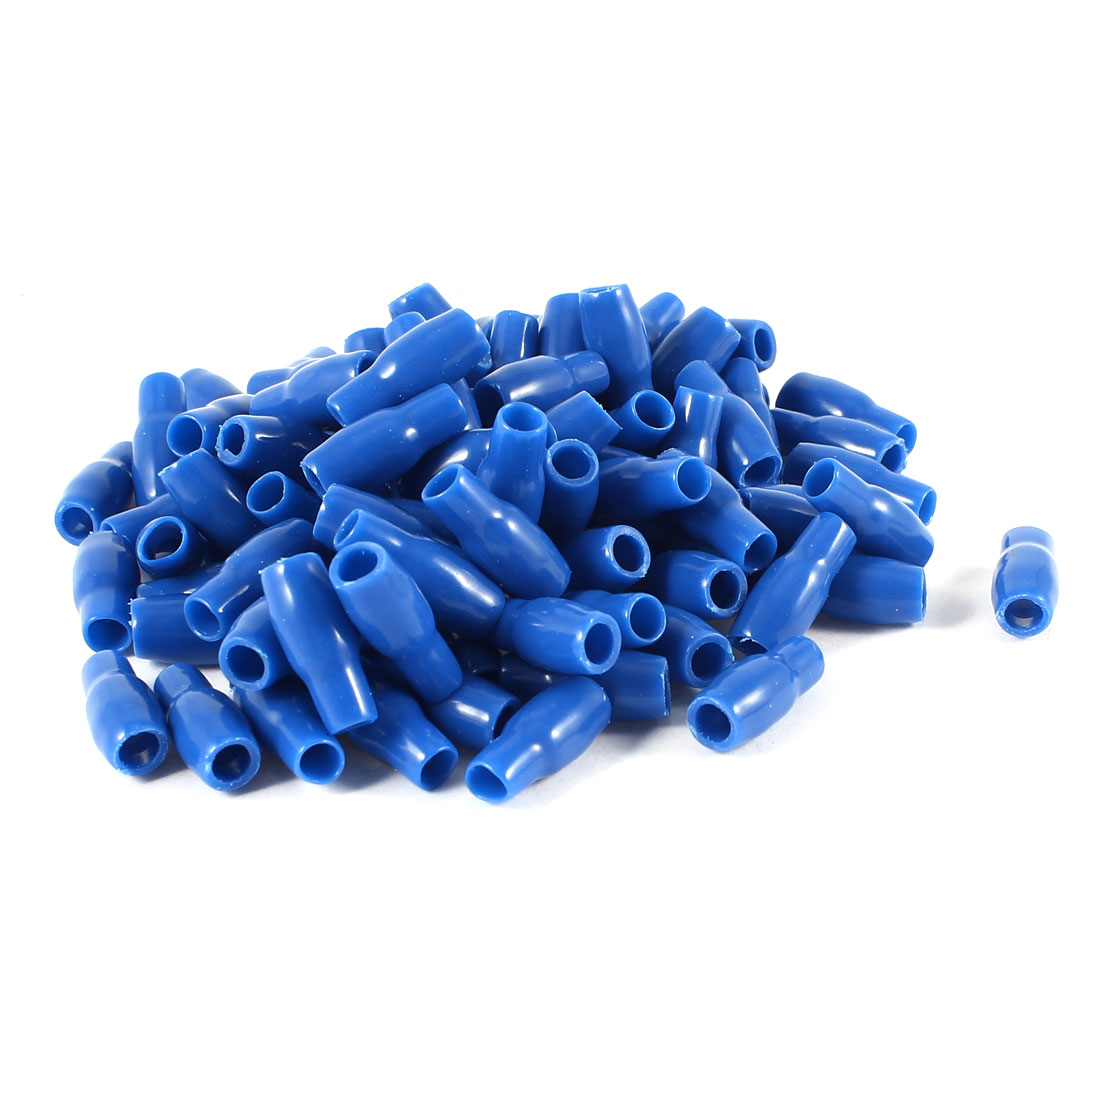 100 Pcs Blue Soft PVC Wire V-3.5 4mm2 Crimp Terminal End Insulated Sleeves Caps Cover